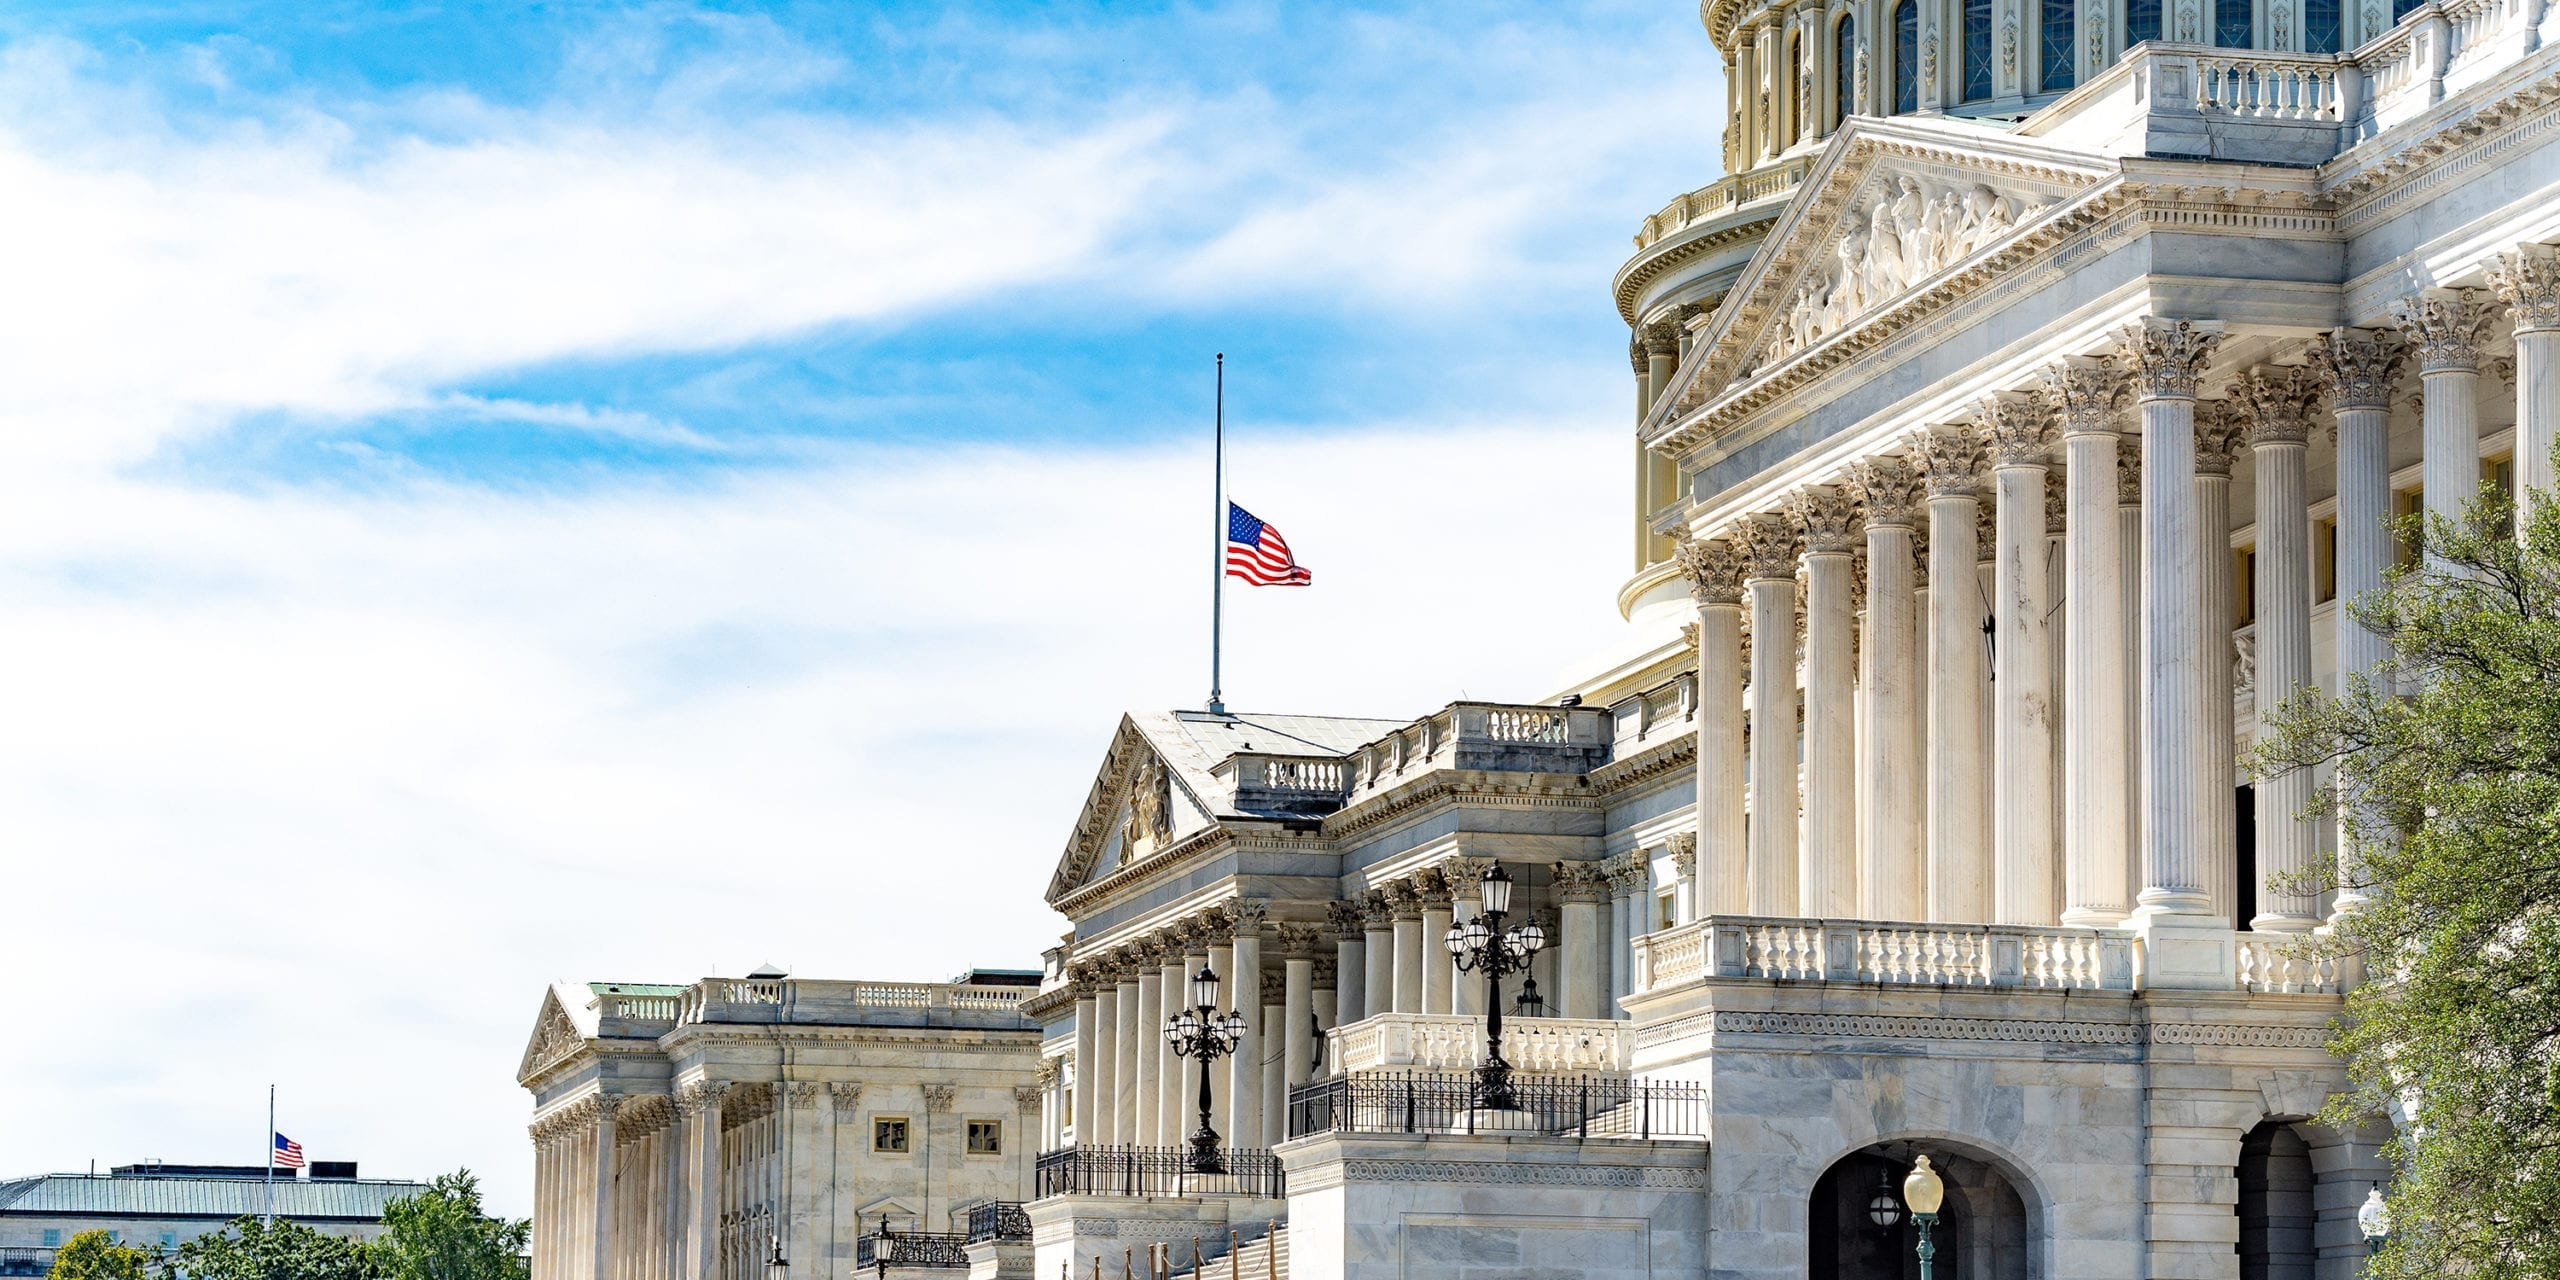 The US flag at half mast in fromt of the Capitol following the death of Justice Ruth Bader Ginsburg. Photo by Ted Eytan.